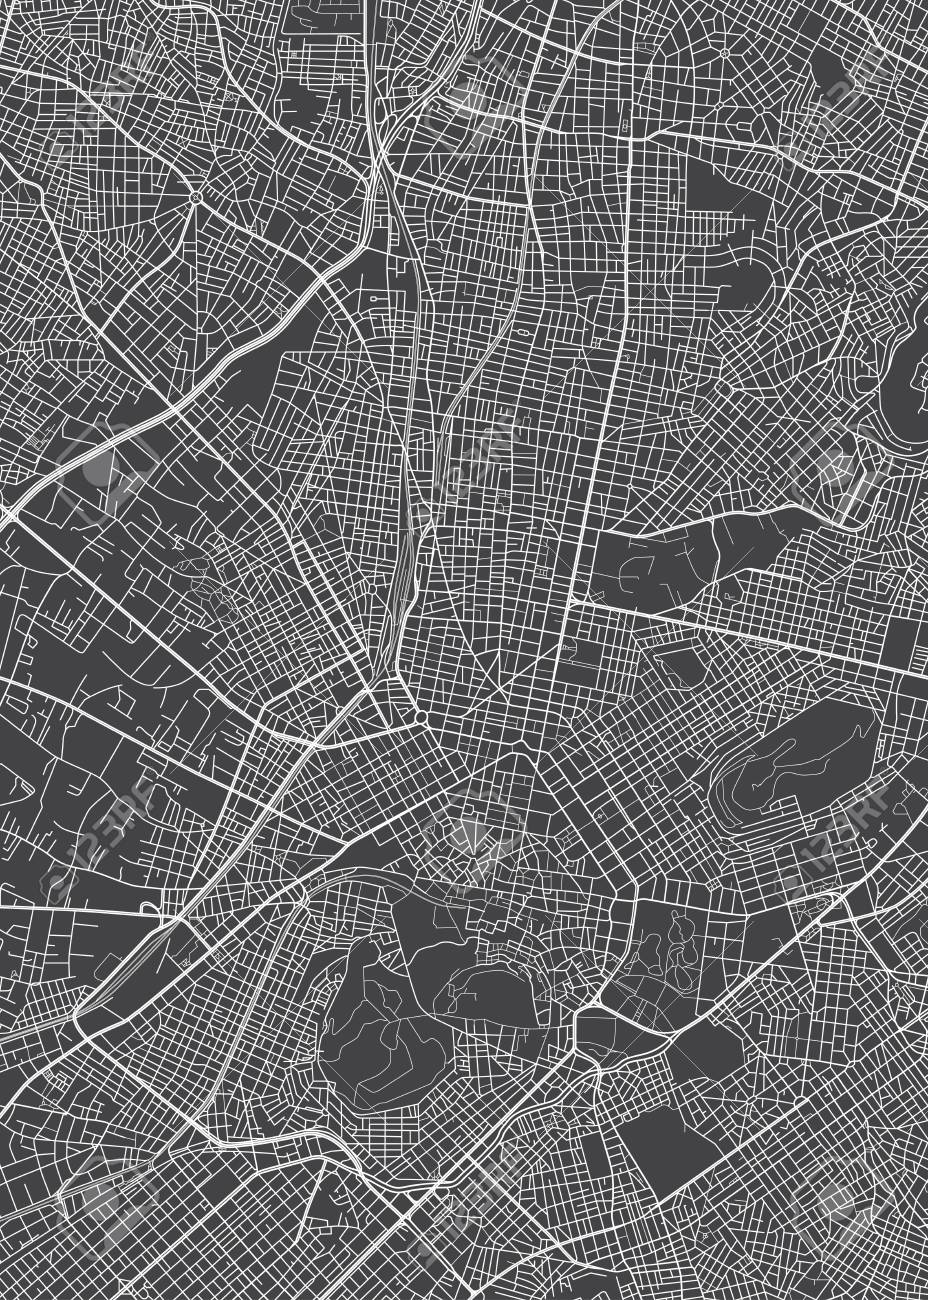 Athens city plan, detailed vector map detailed plan of the city, rivers and streets - 123721458